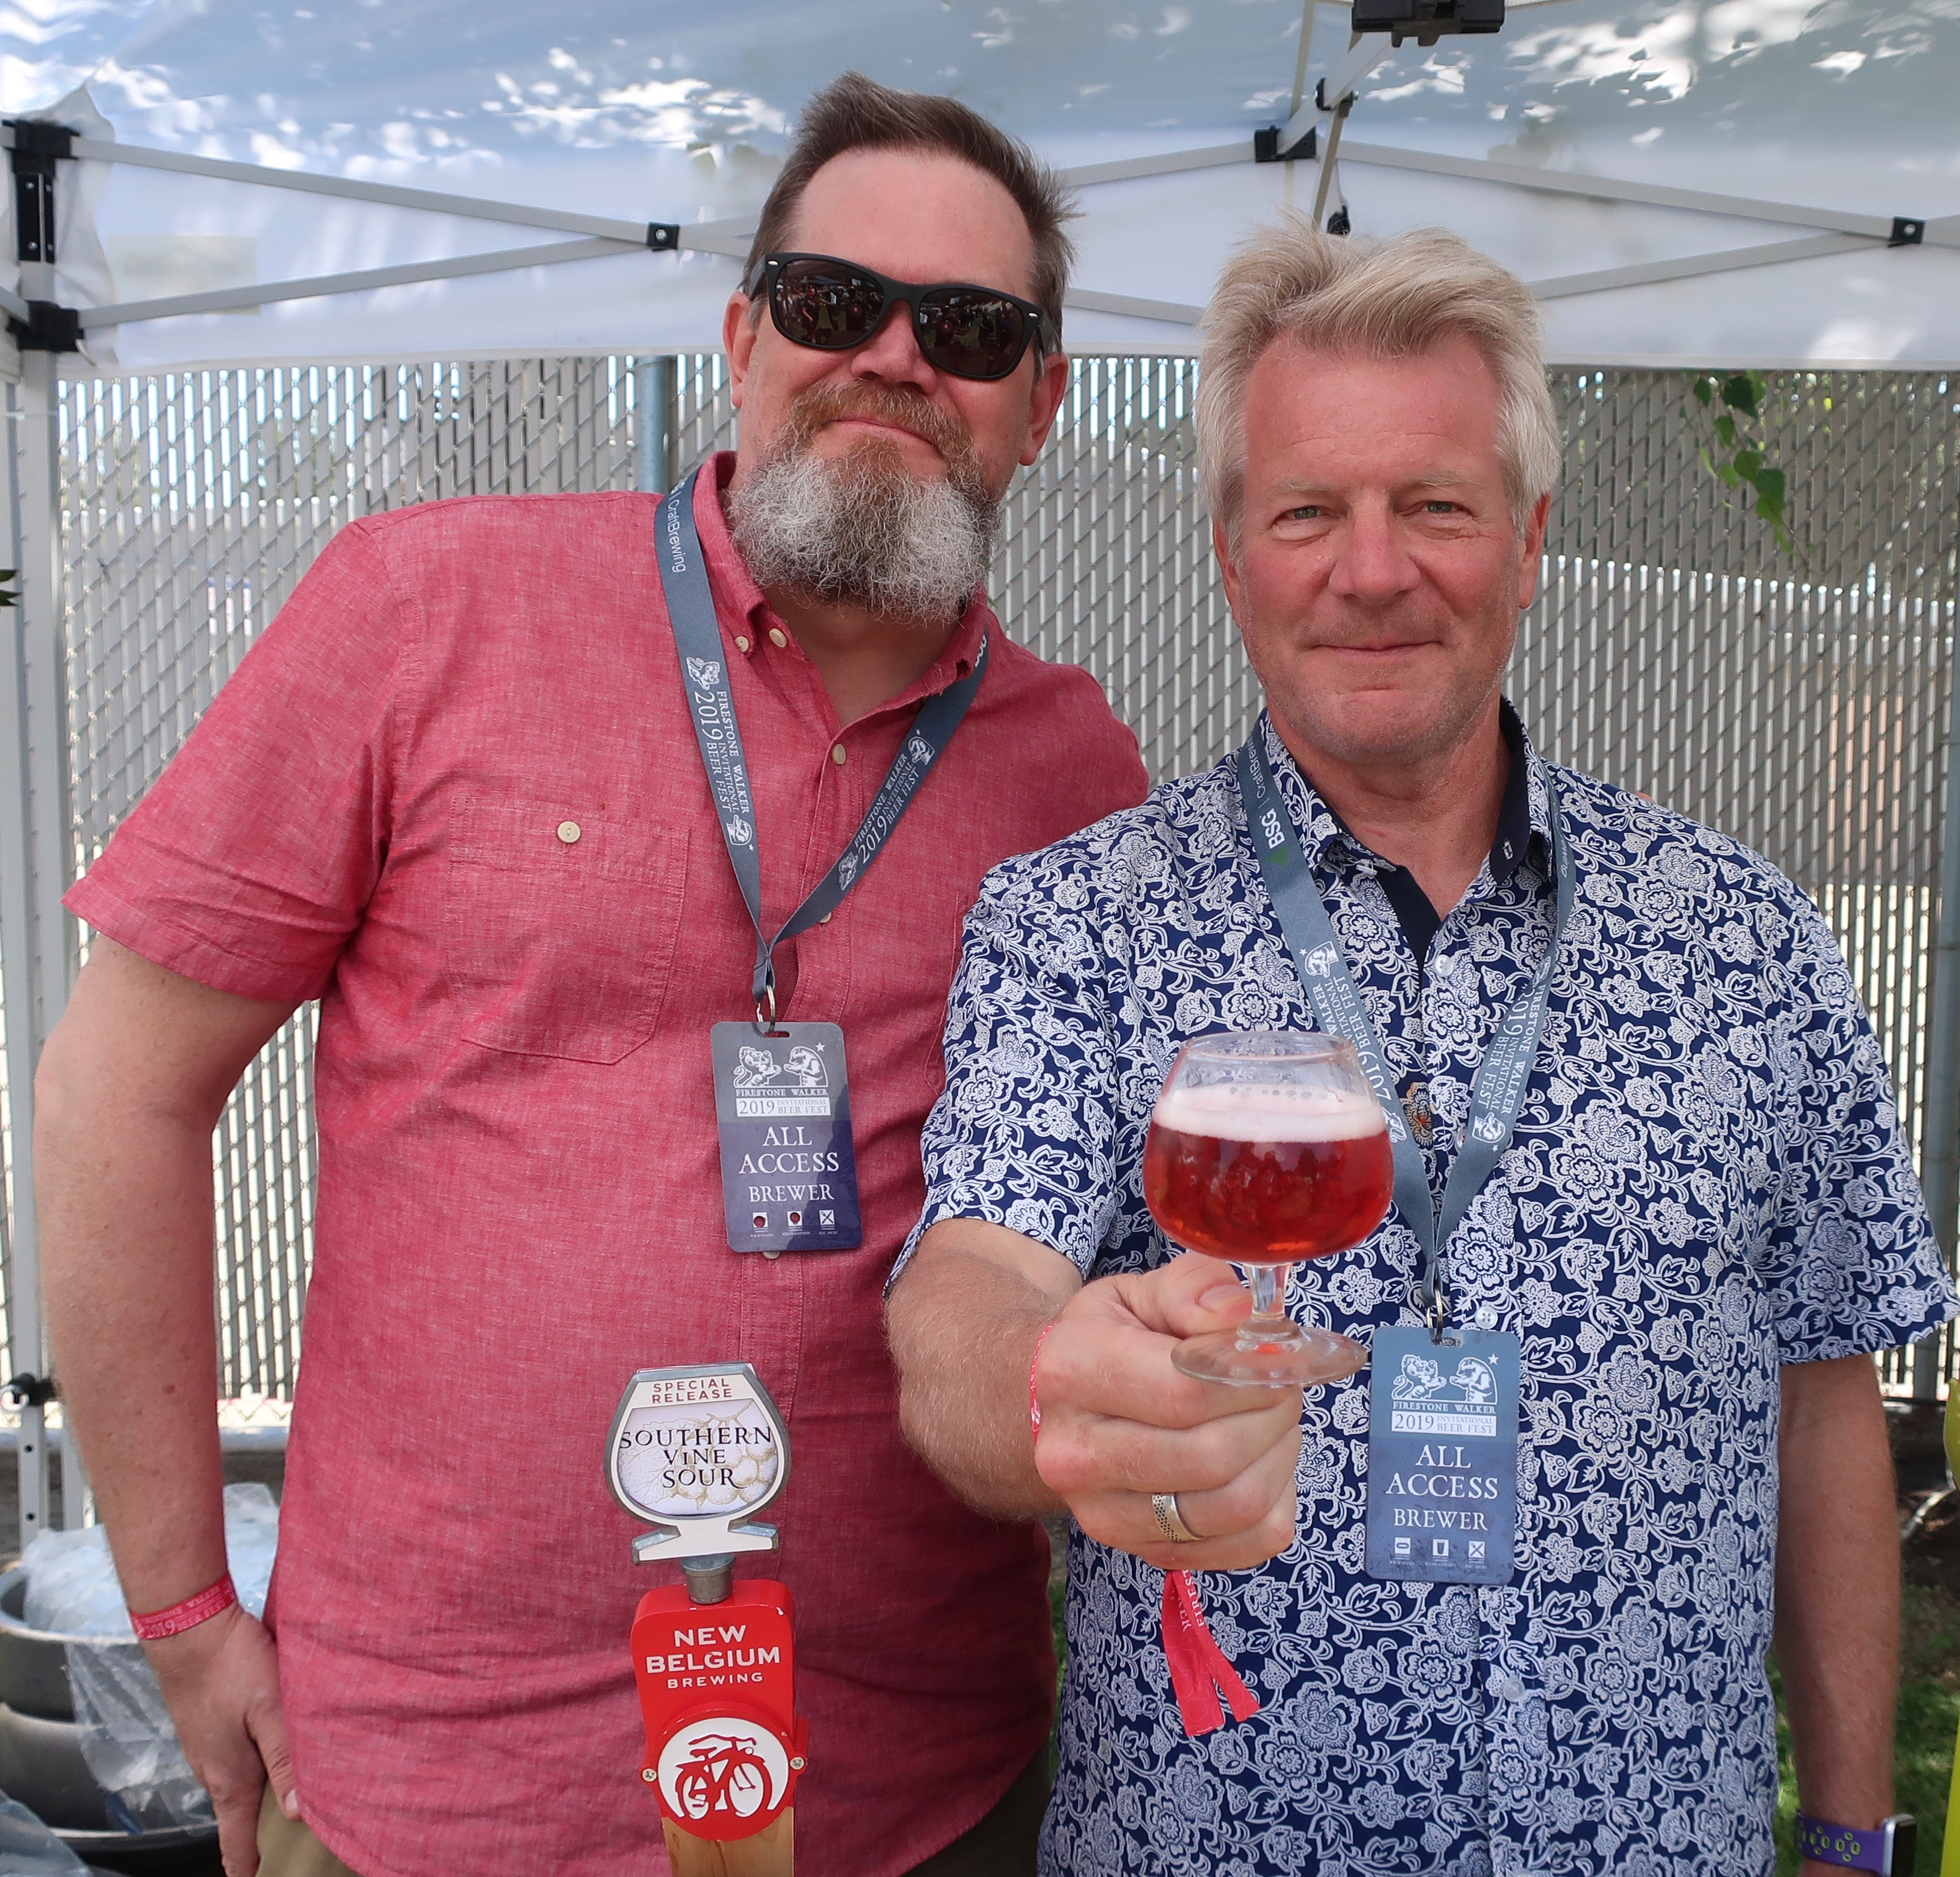 Joel Winn and Dick Cantwell pouring New Belgium beers at the 2019 Firestone Walker Invitational Beer Fest. Really enjoyed the Mural Aqua Fresca Cerveza.